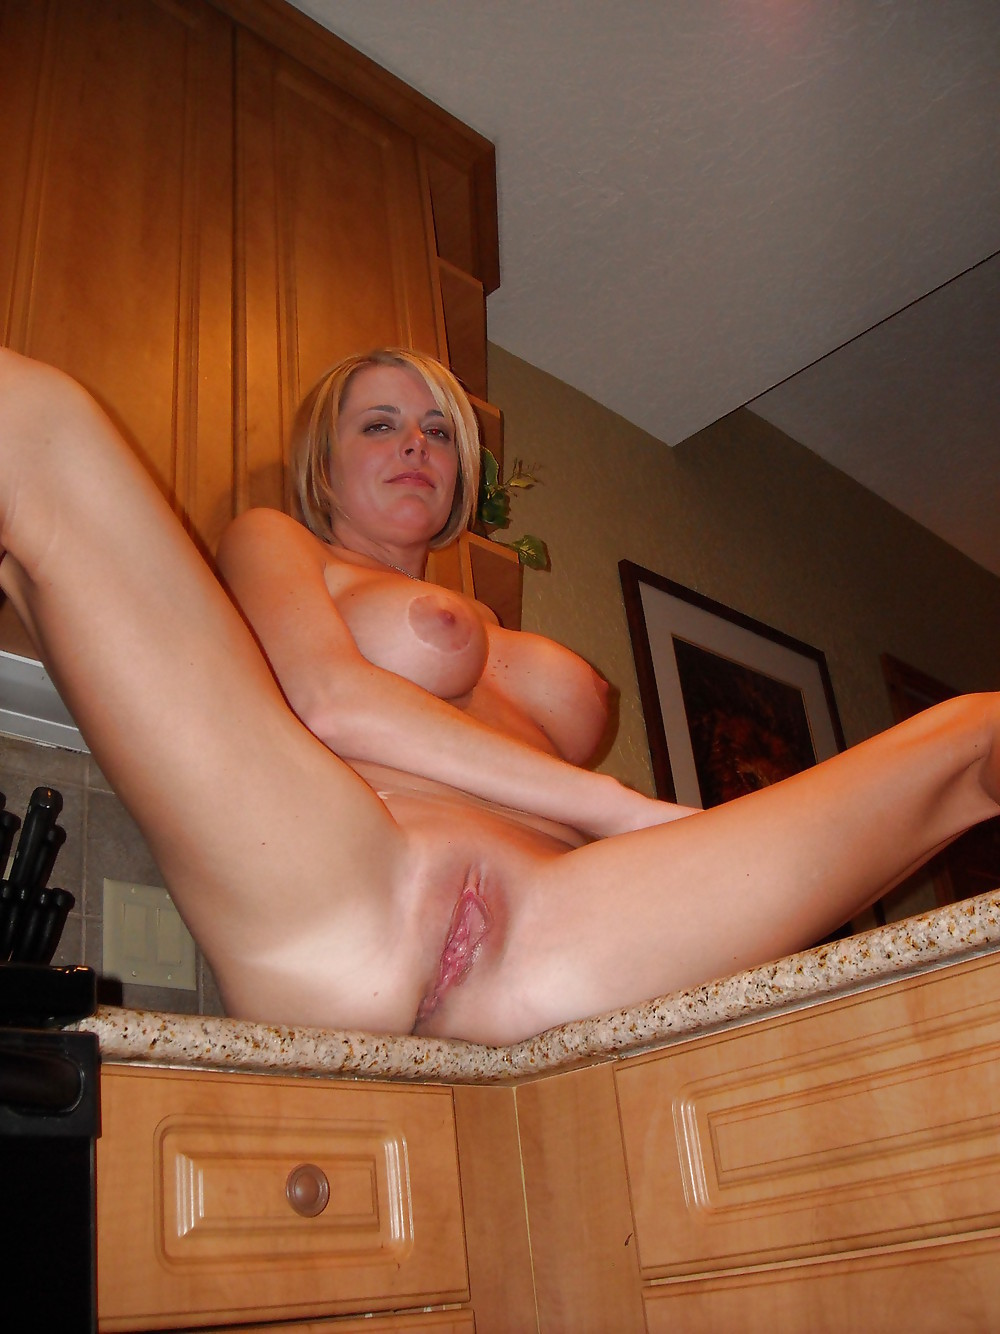 Housewives milf tumblr bored